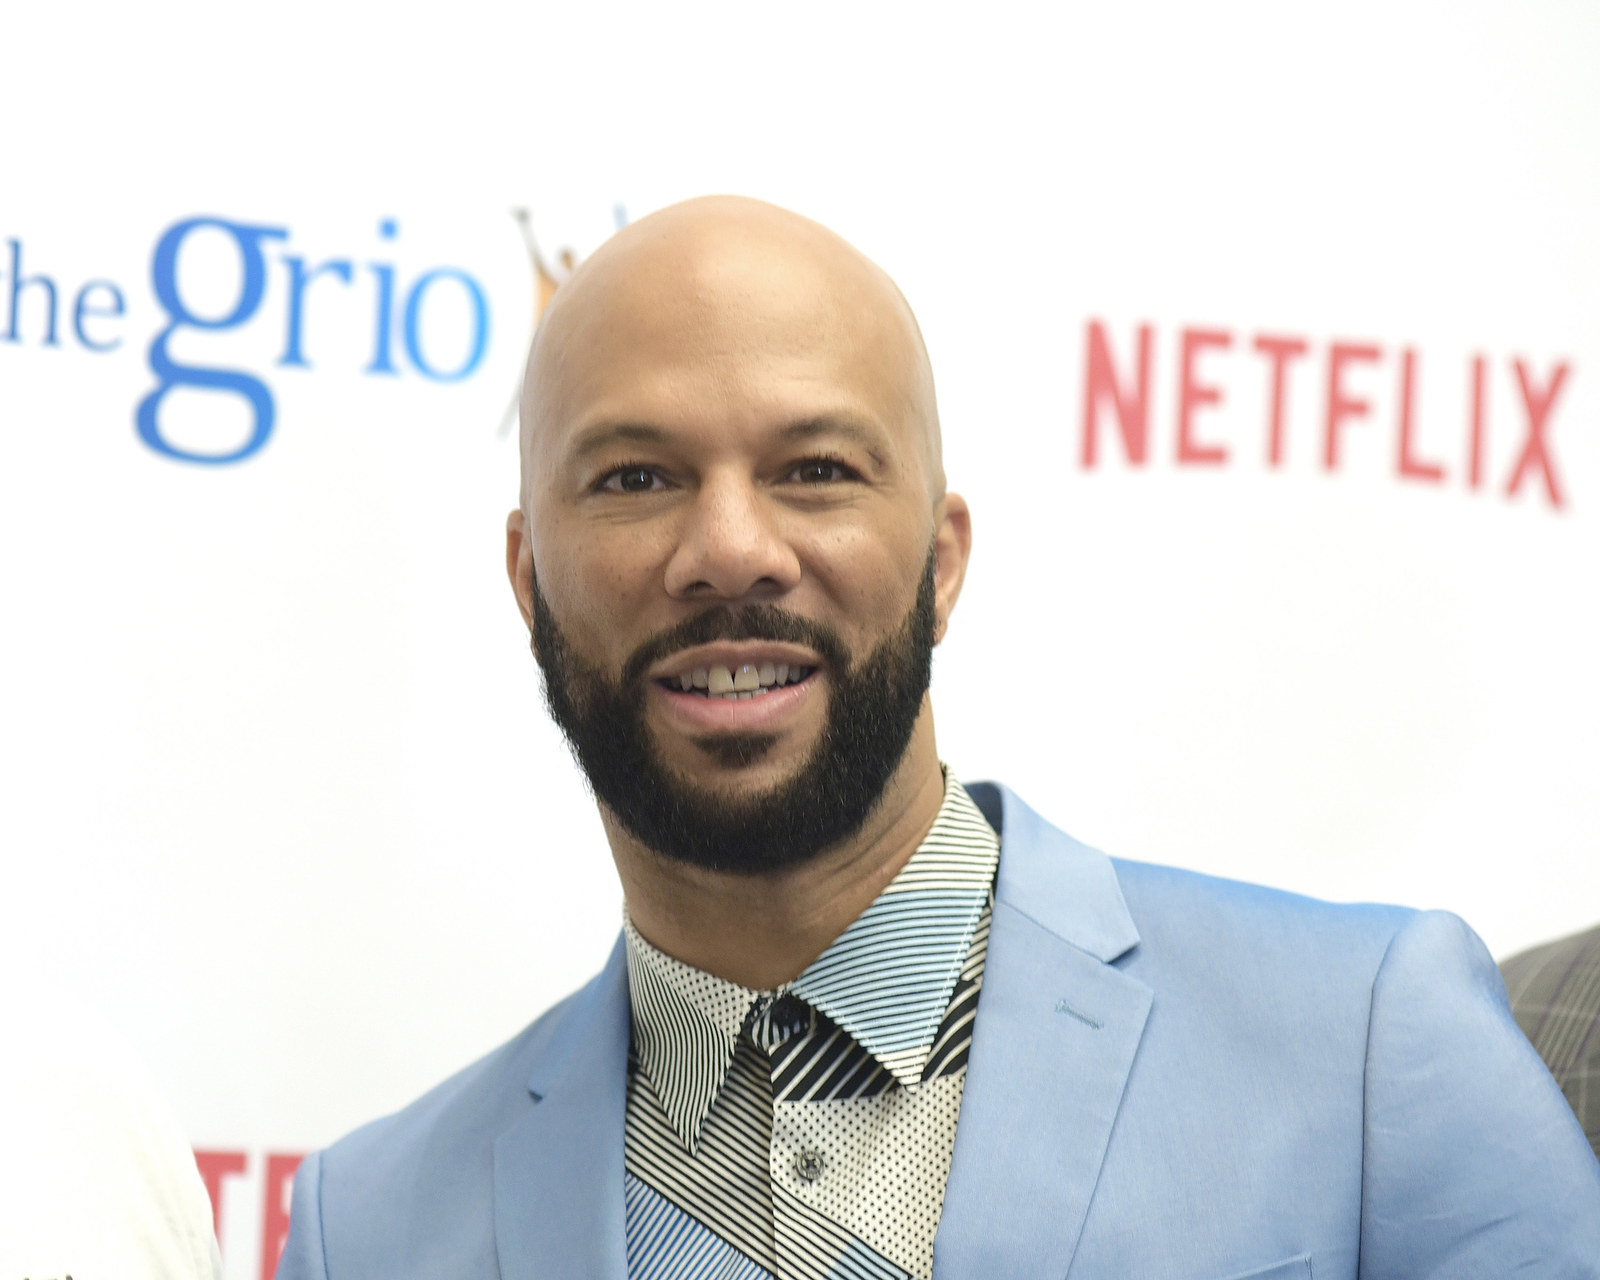 On March 13, Common will be 47.